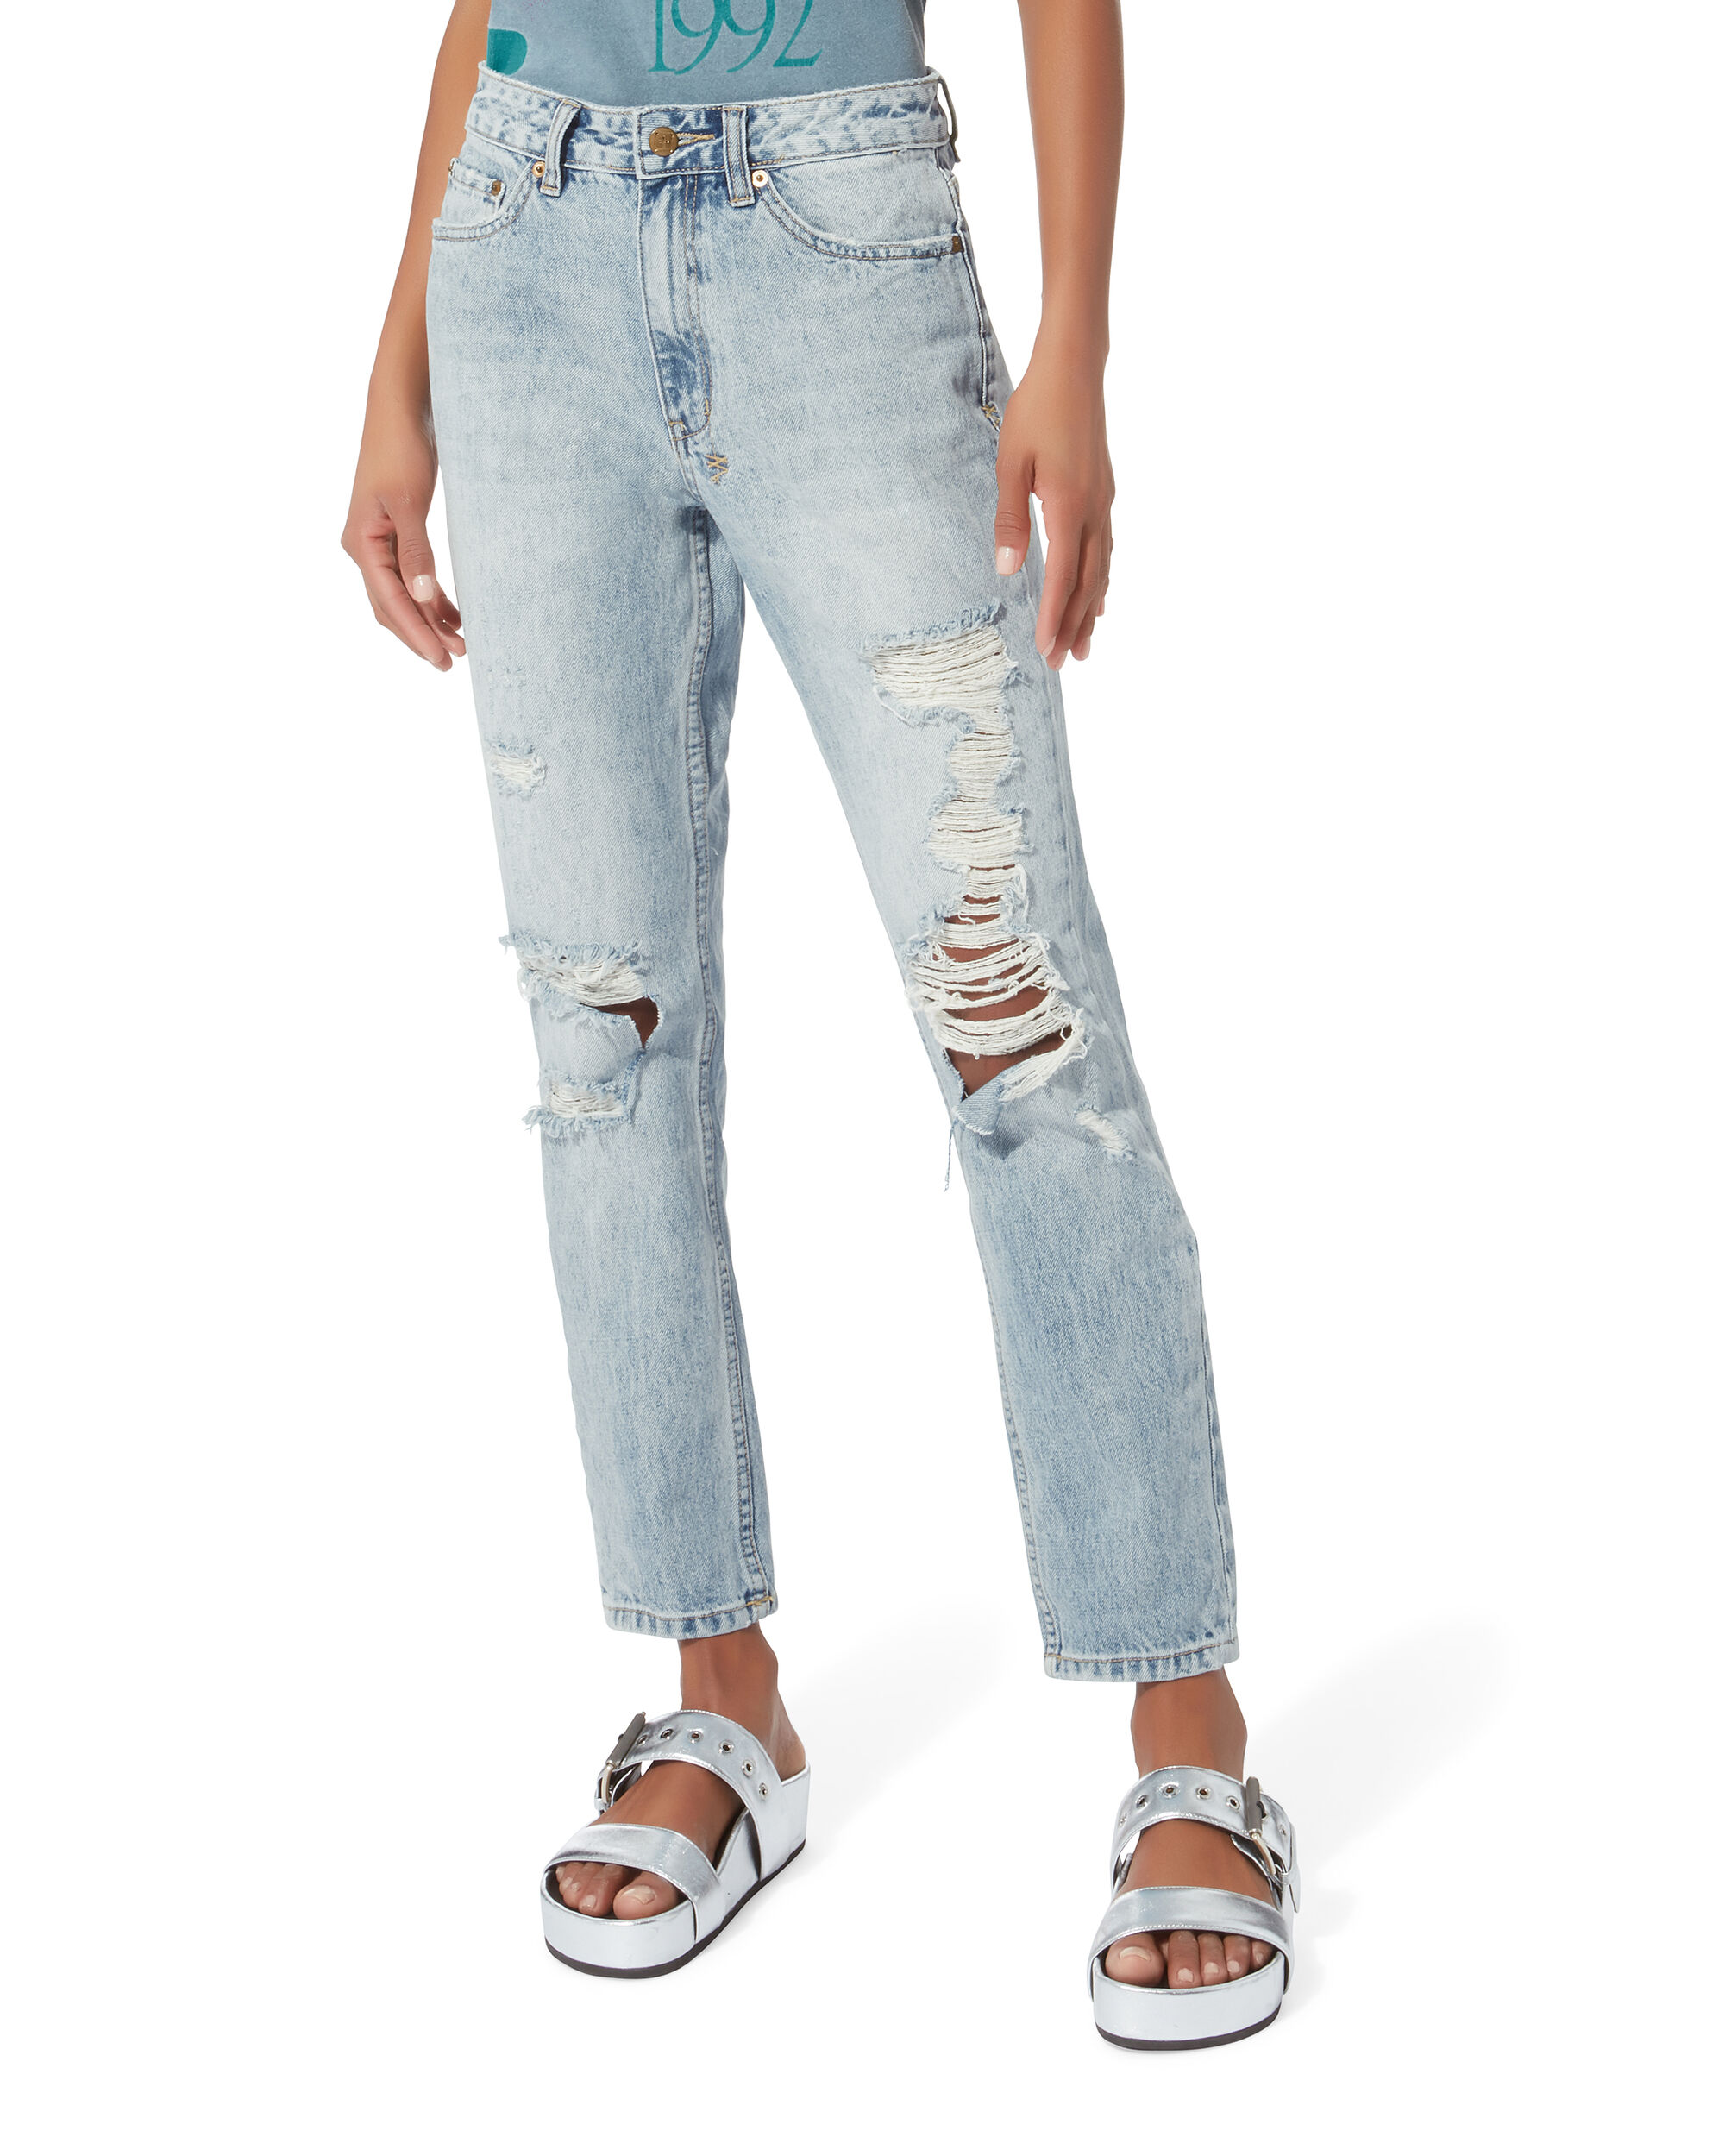 Slim Pin Distressed Jeans, DENIM-LT, hi-res